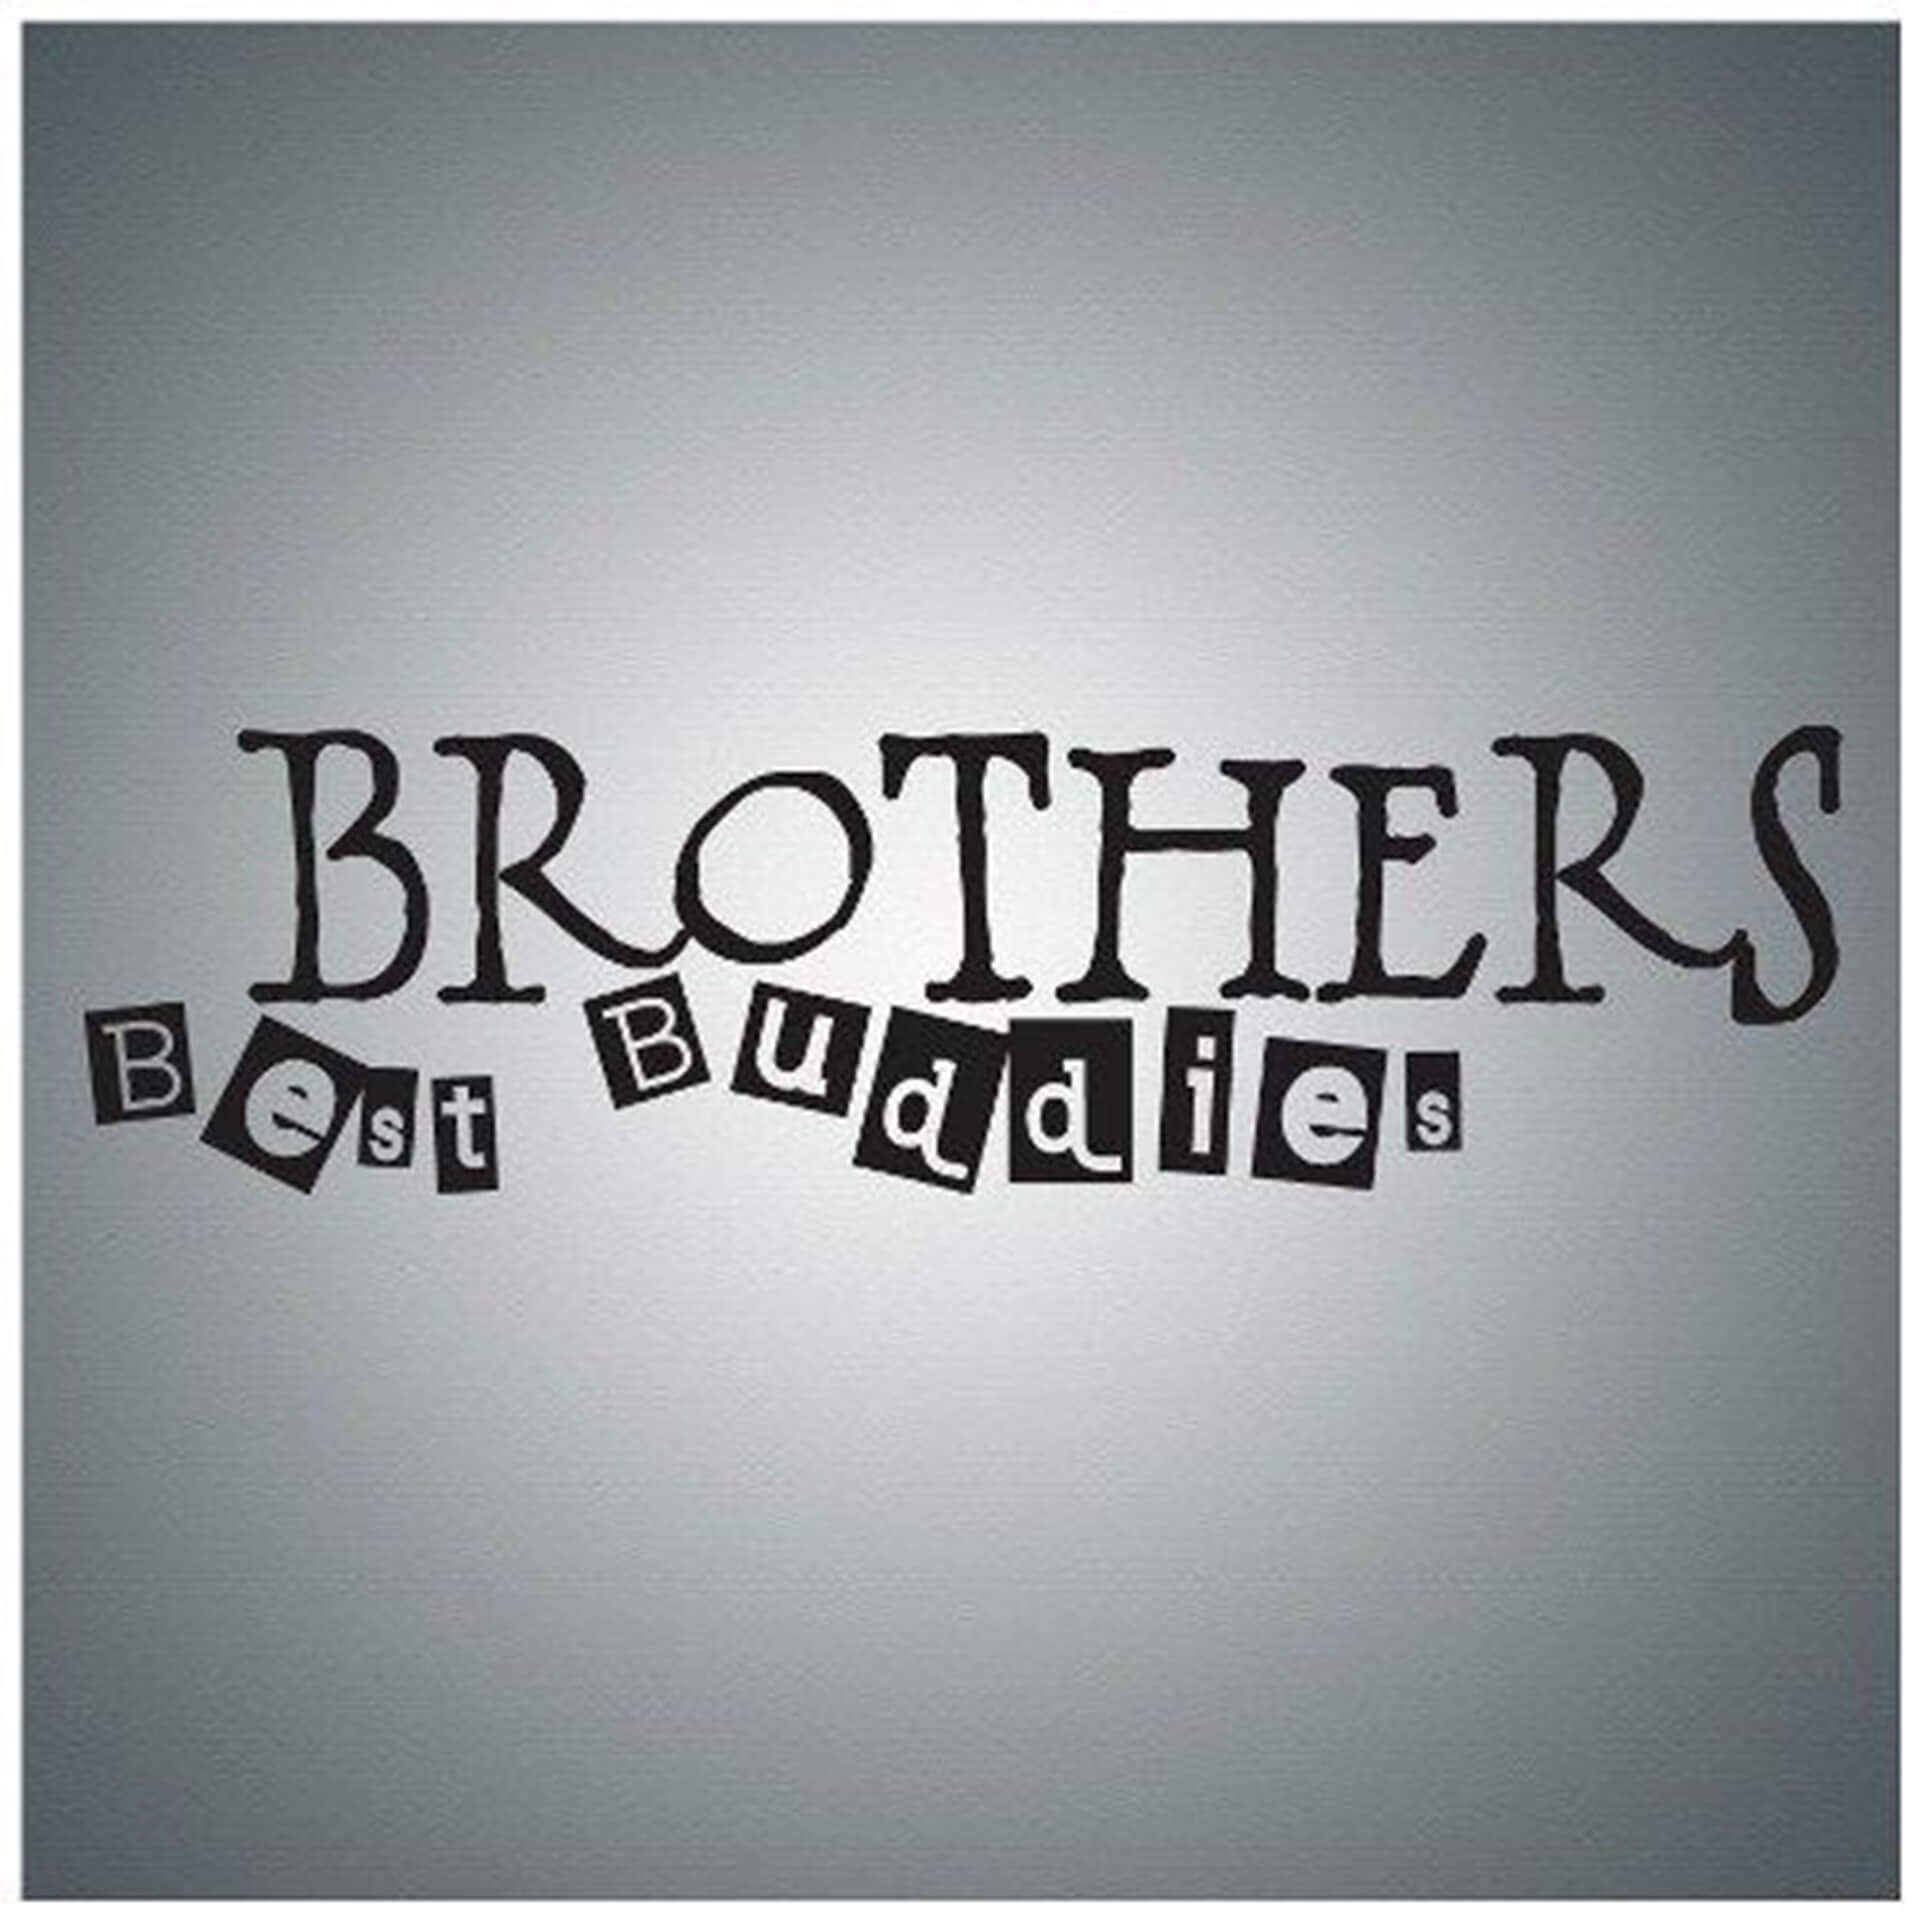 Happy Brothers Day Wishes Greetings Best Buddies Text Image 1920x1920